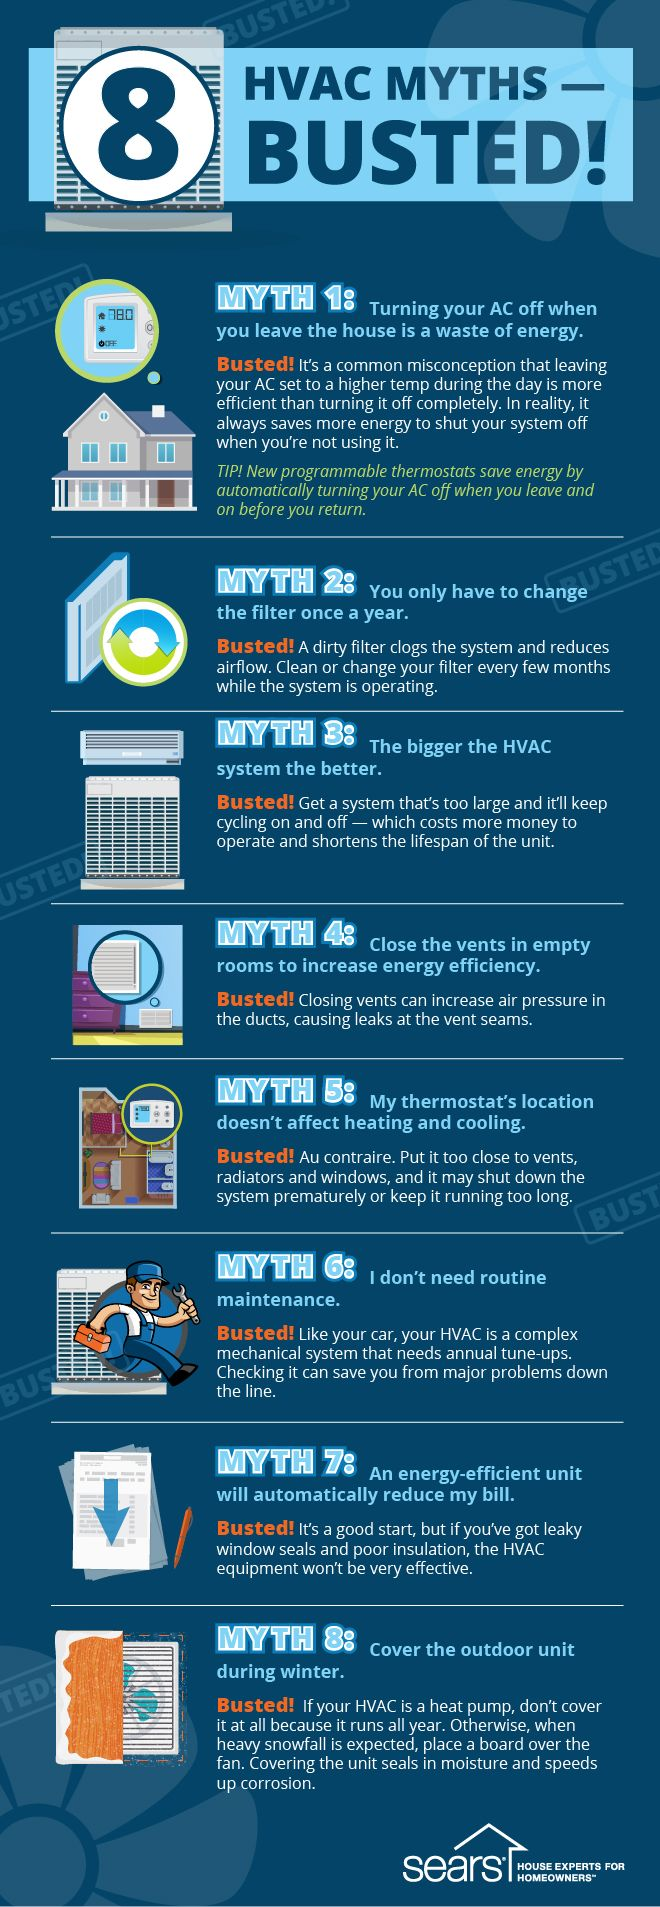 Average cost of new furnace and ac for home - Check Out These Busted Hvac Myths Avoid Furnace Freeze Out This Winter